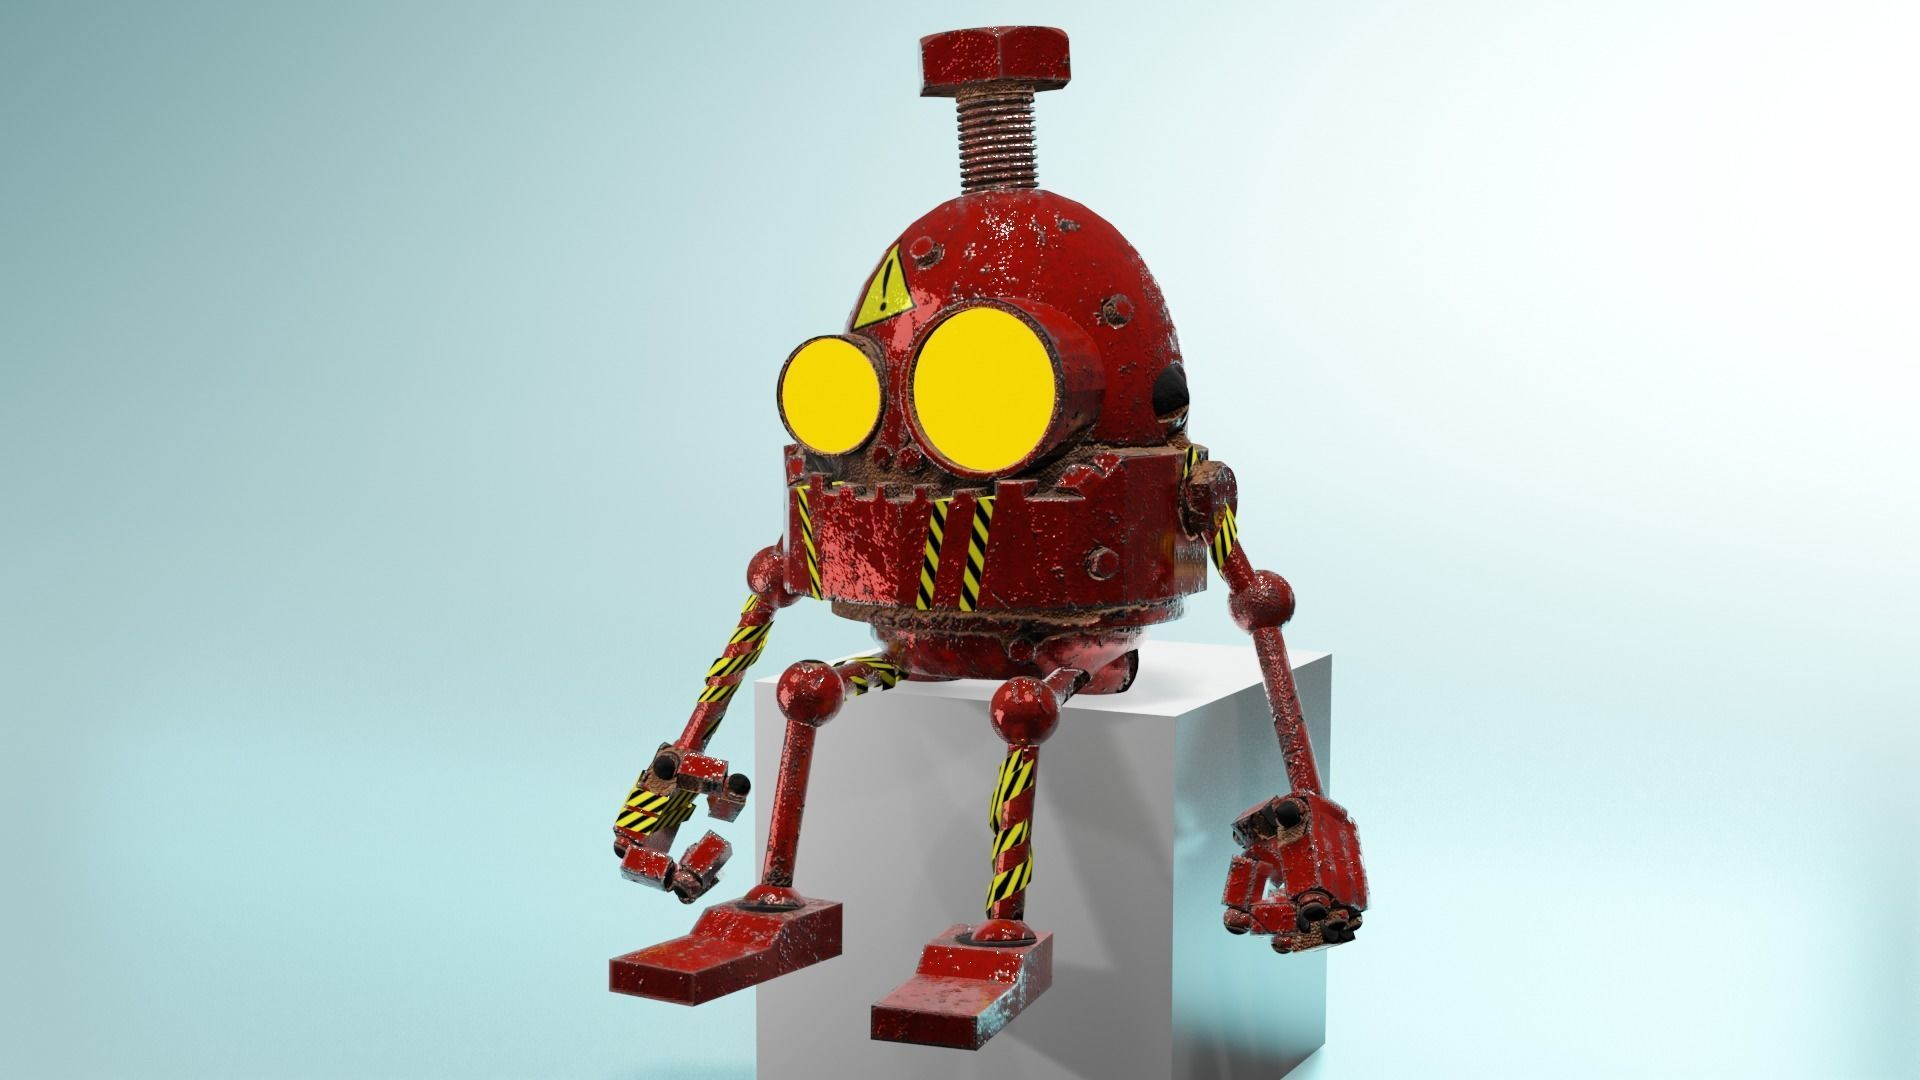 ROBOT without name